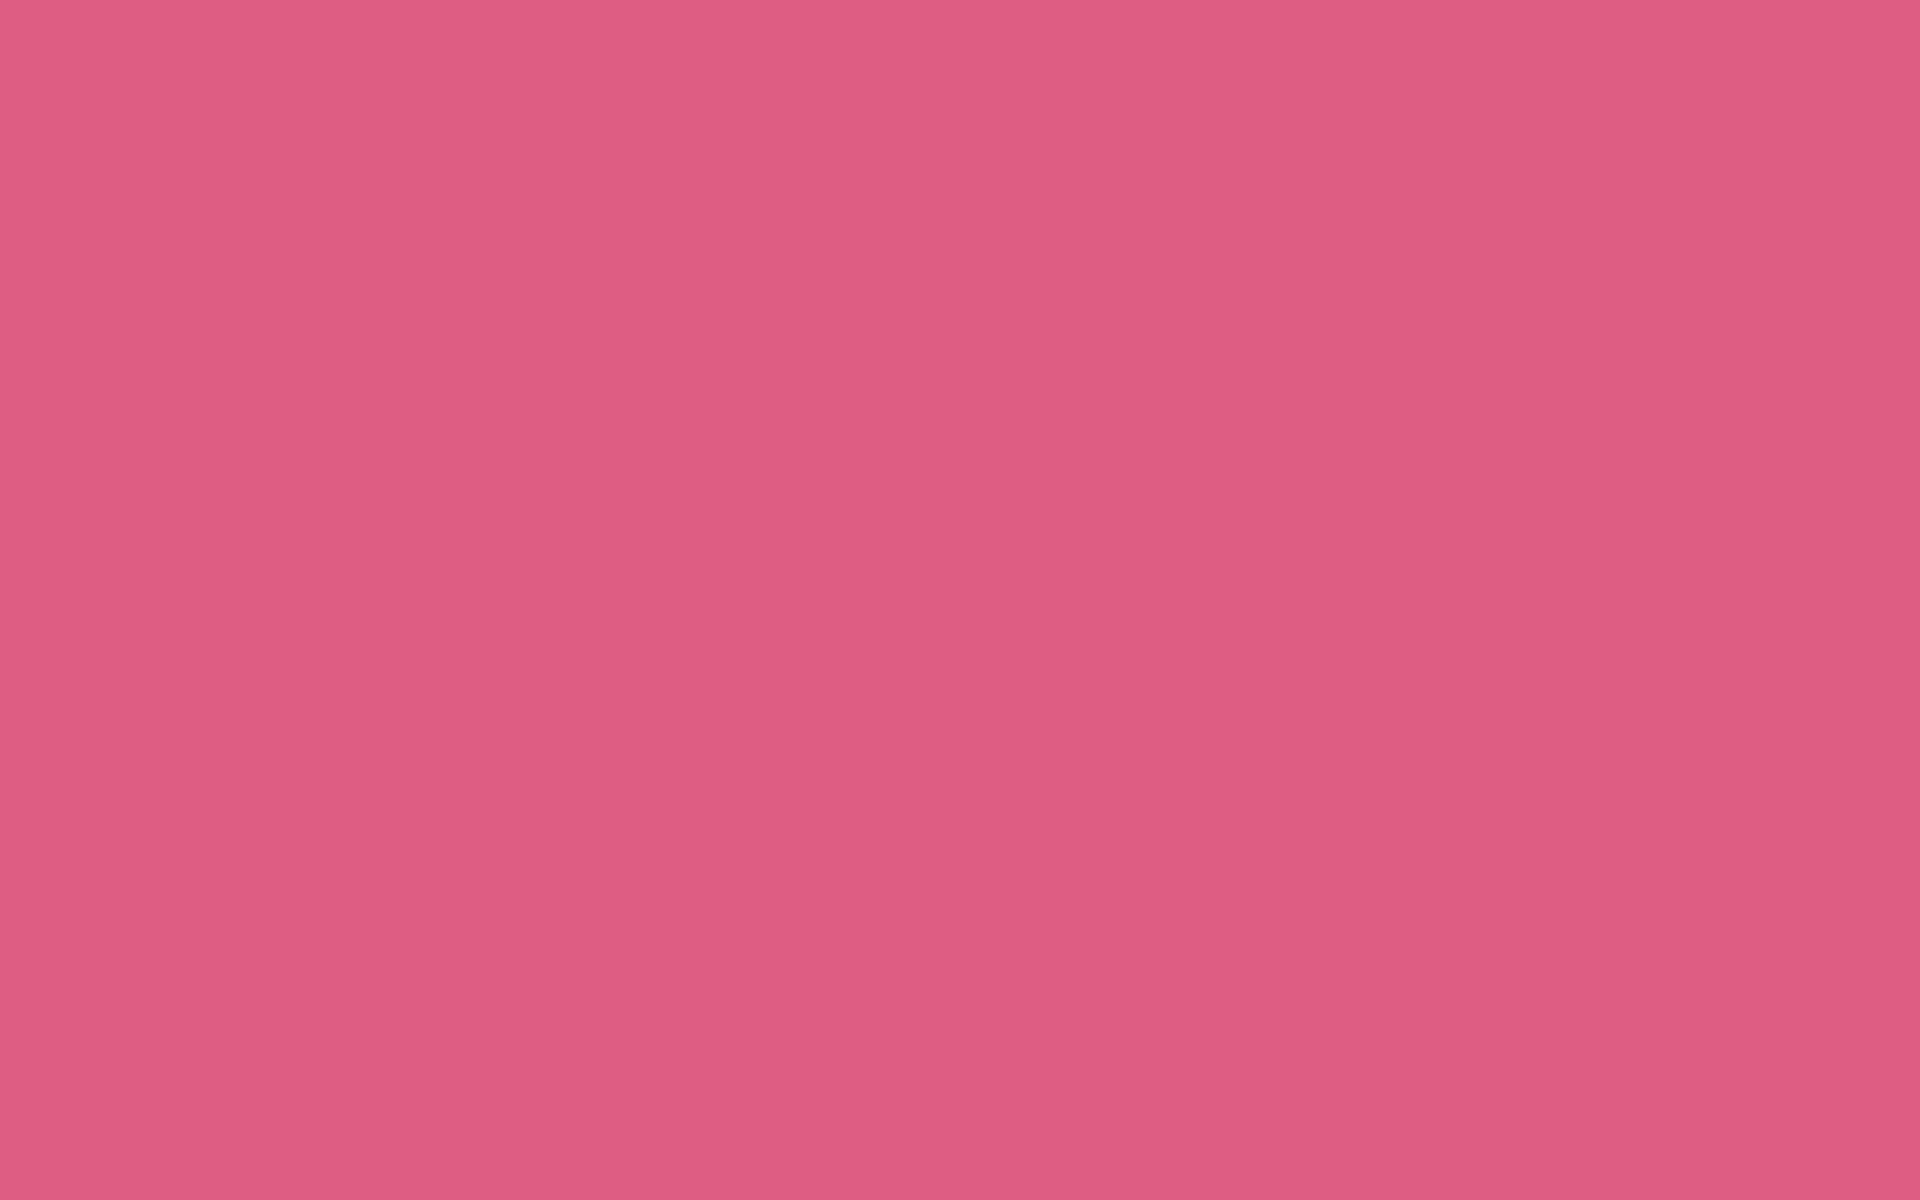 1920x1200 Blush Solid Color Background